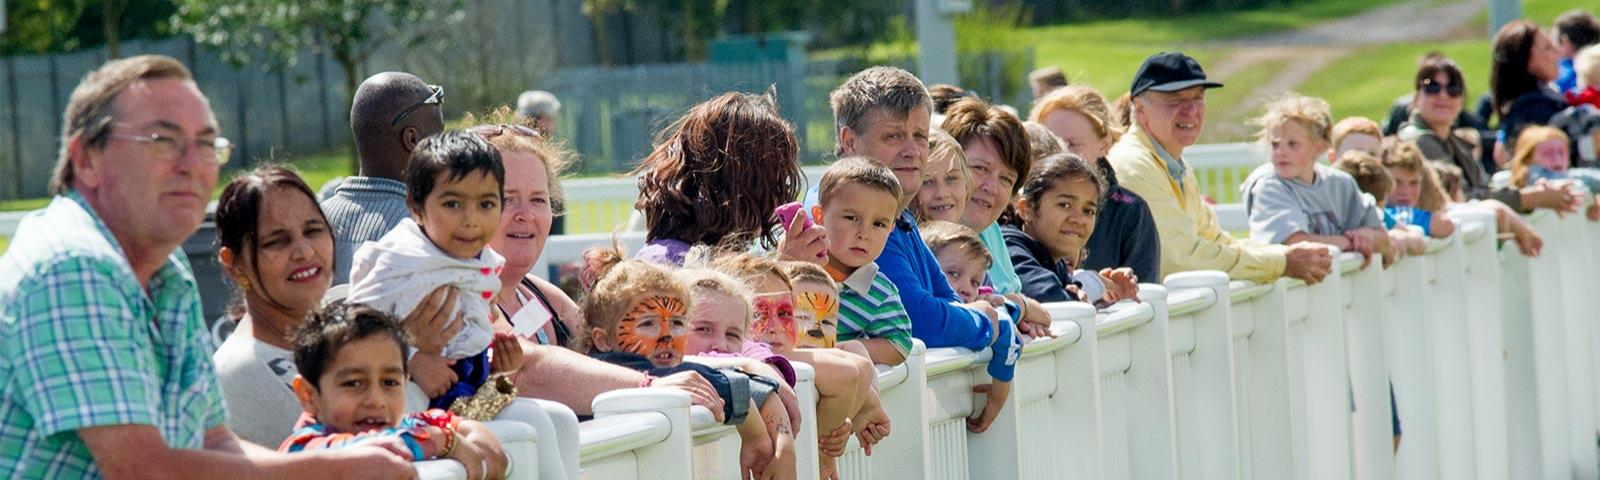 Families with face painted children gather to watch the race.